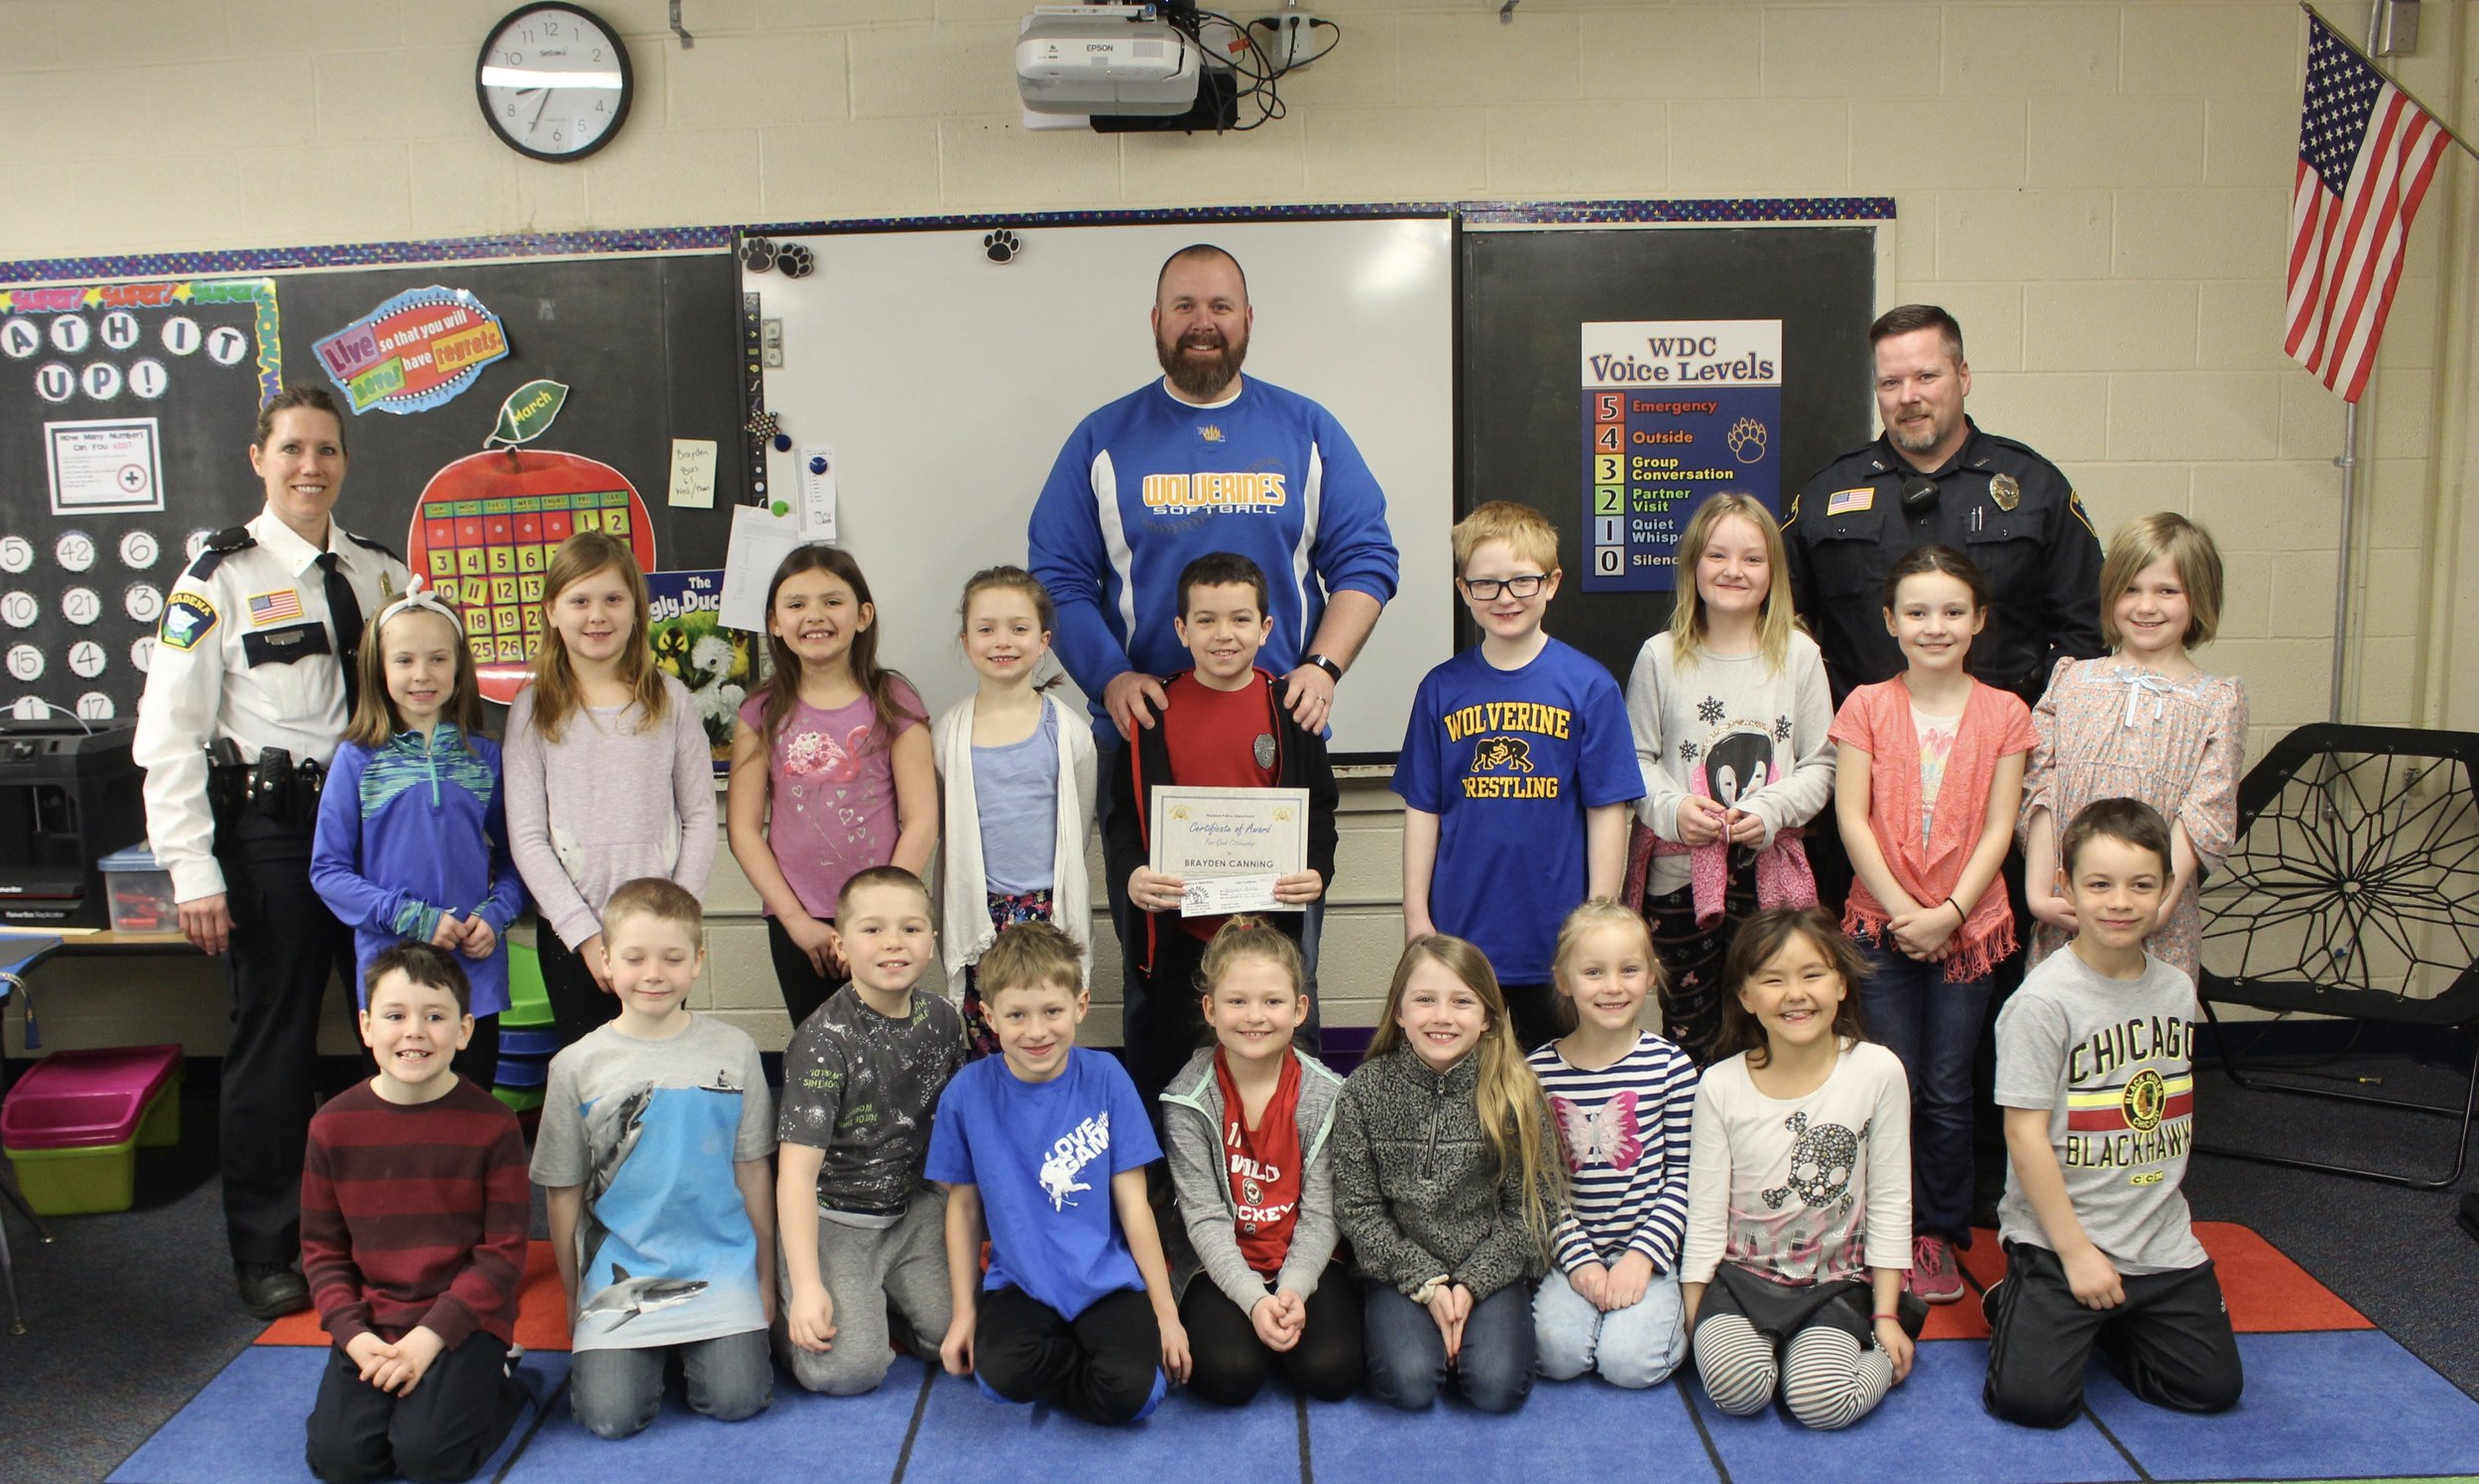 Proud day for Wadena-Deer Creek Schools as 8-year-old second-grader Brayden Canning was honored for saving his great-grandma's life. Brayden was presented with a Citizenship Award from the Wadena Police Department in front of his second-grade class and teacher Mr. Ferris. Photo by Dana Cantleberry, WDC Schools.